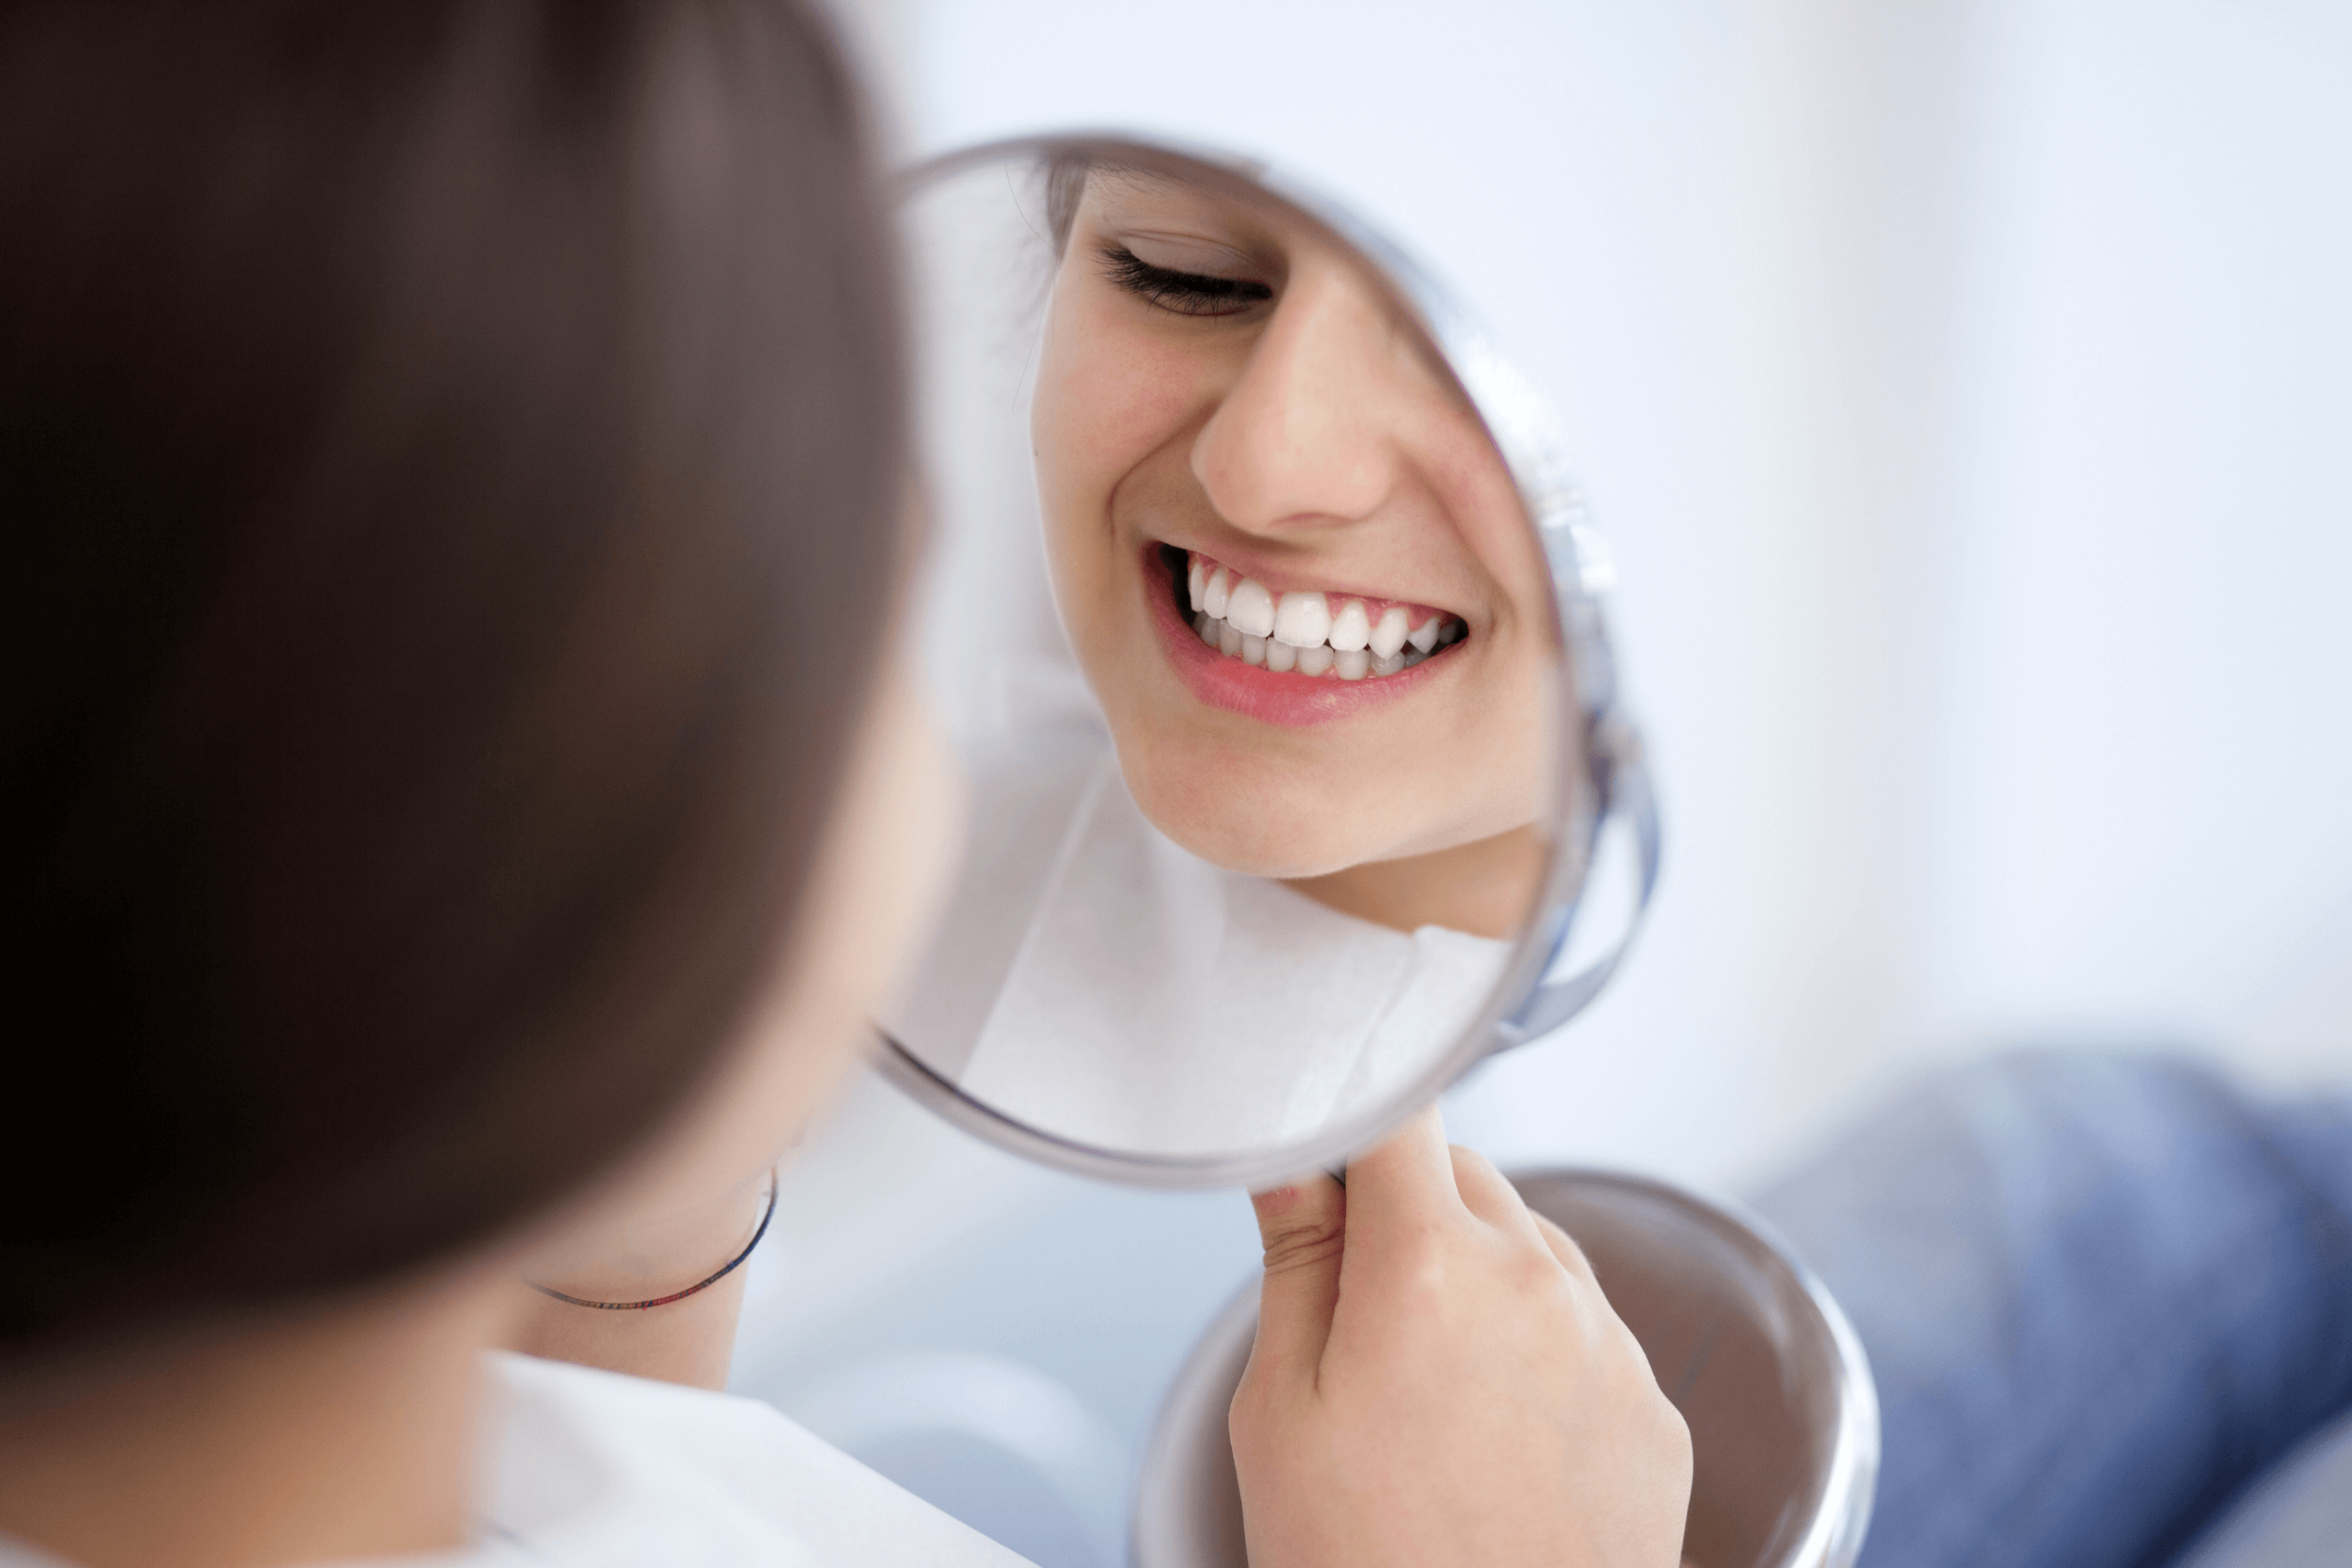 What Are Dental Implants Used For?